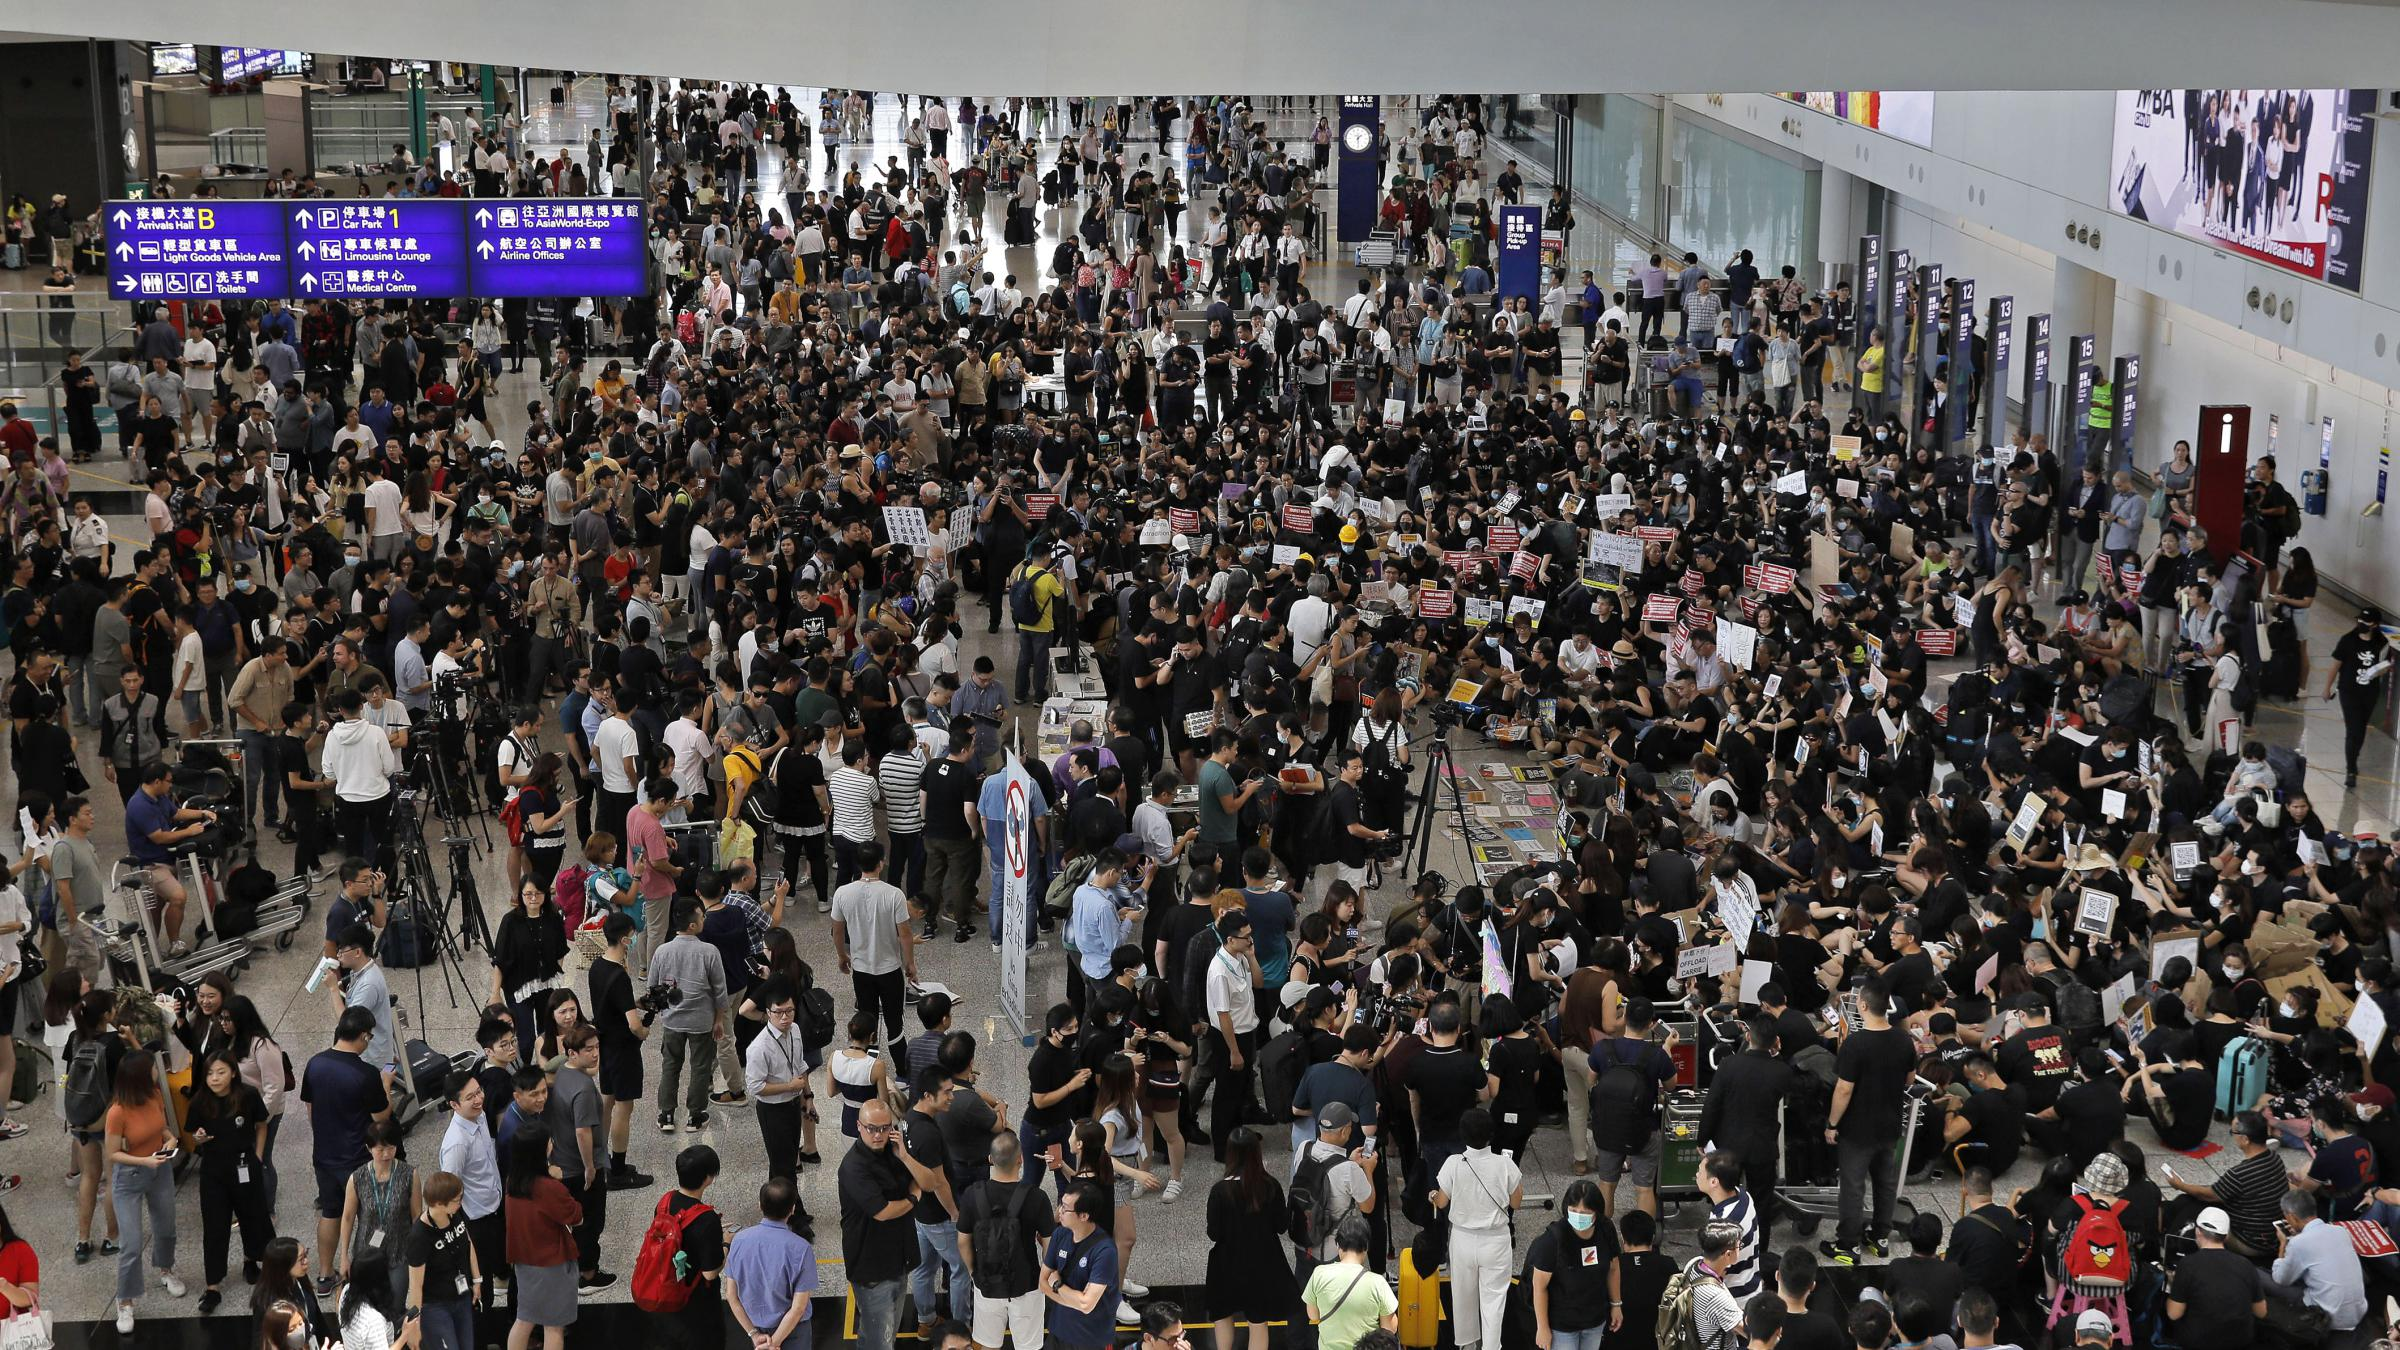 Hong Kong Protesters Occupy The City's Airport In 'Summer Of